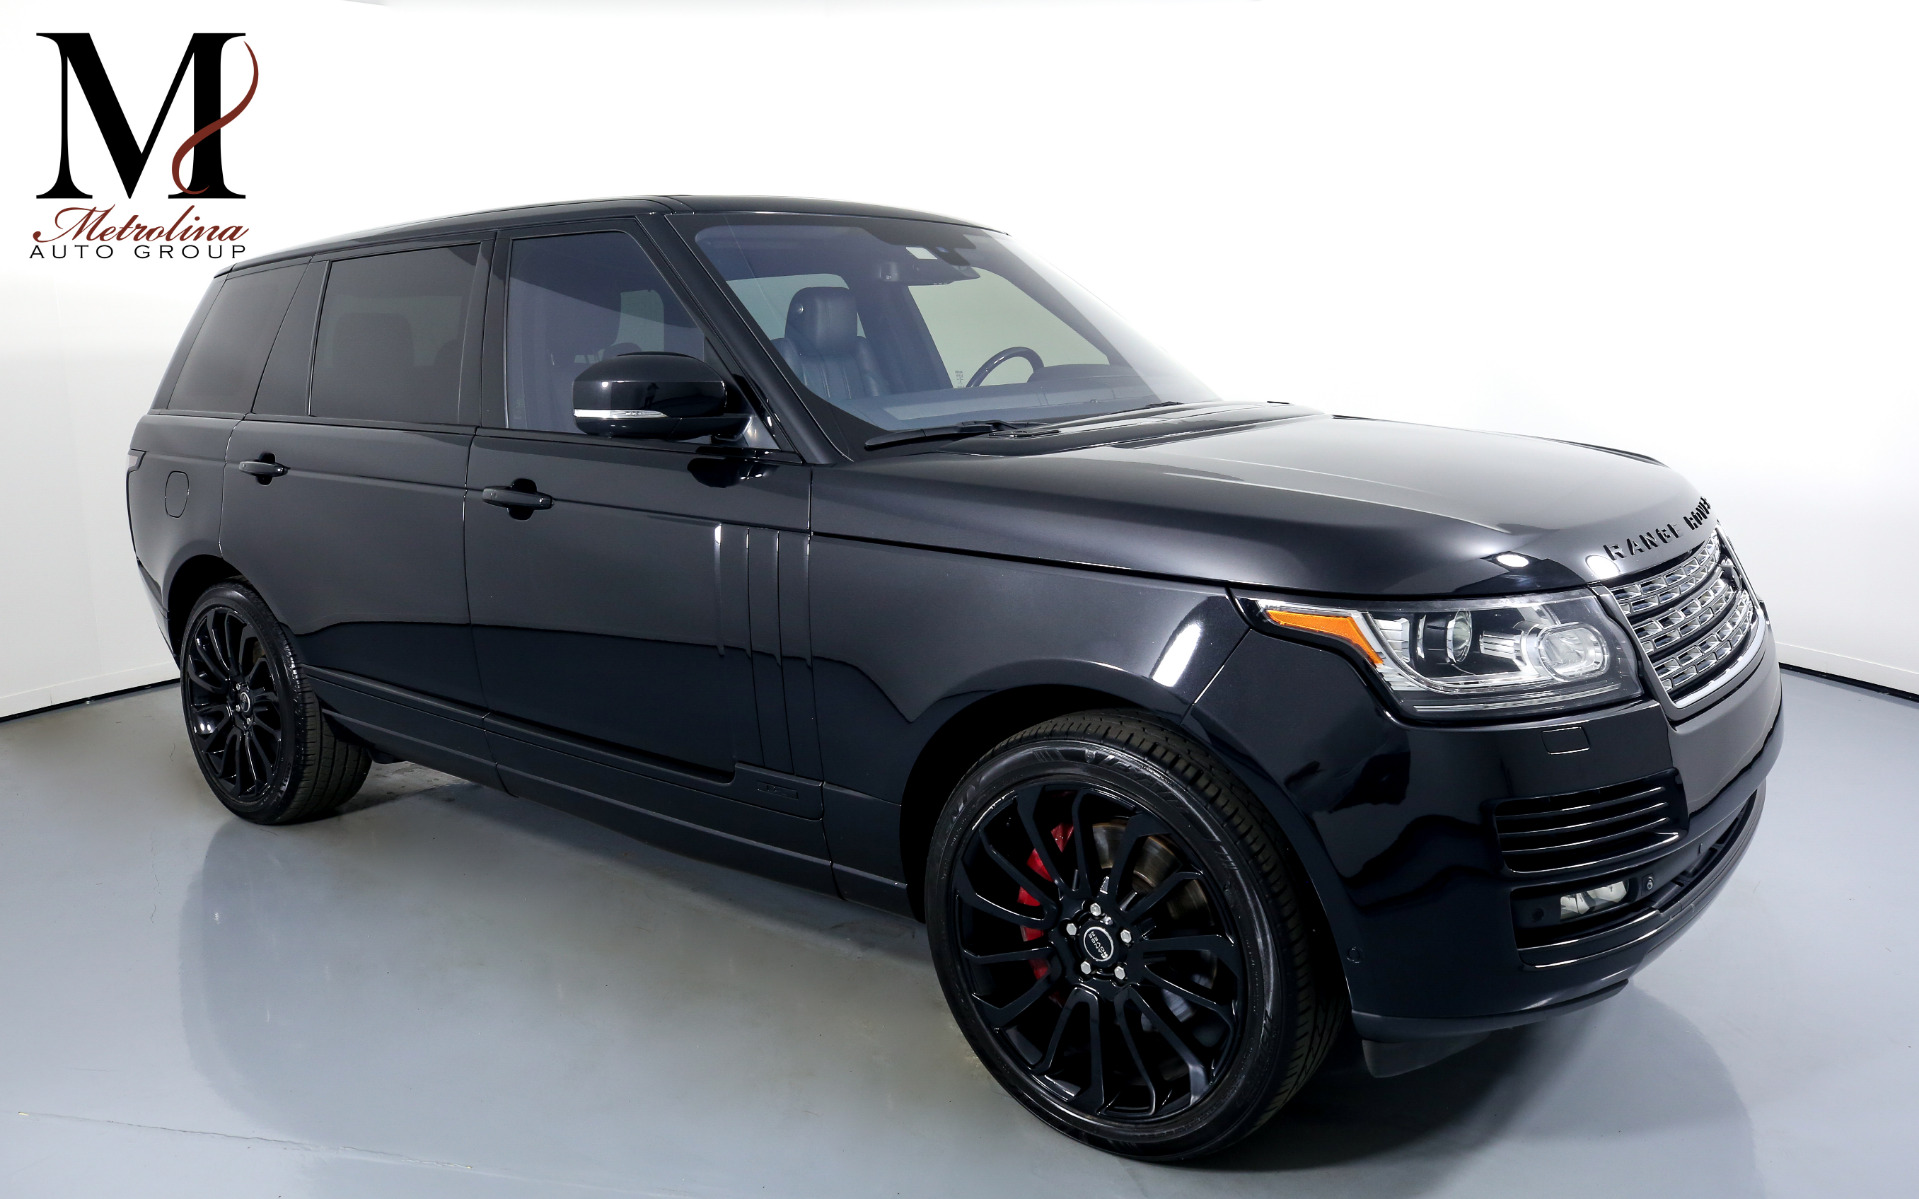 Used 2015 Land Rover Range Rover Supercharged LWB for sale $59,996 at Metrolina Auto Group in Charlotte NC 28217 - 1